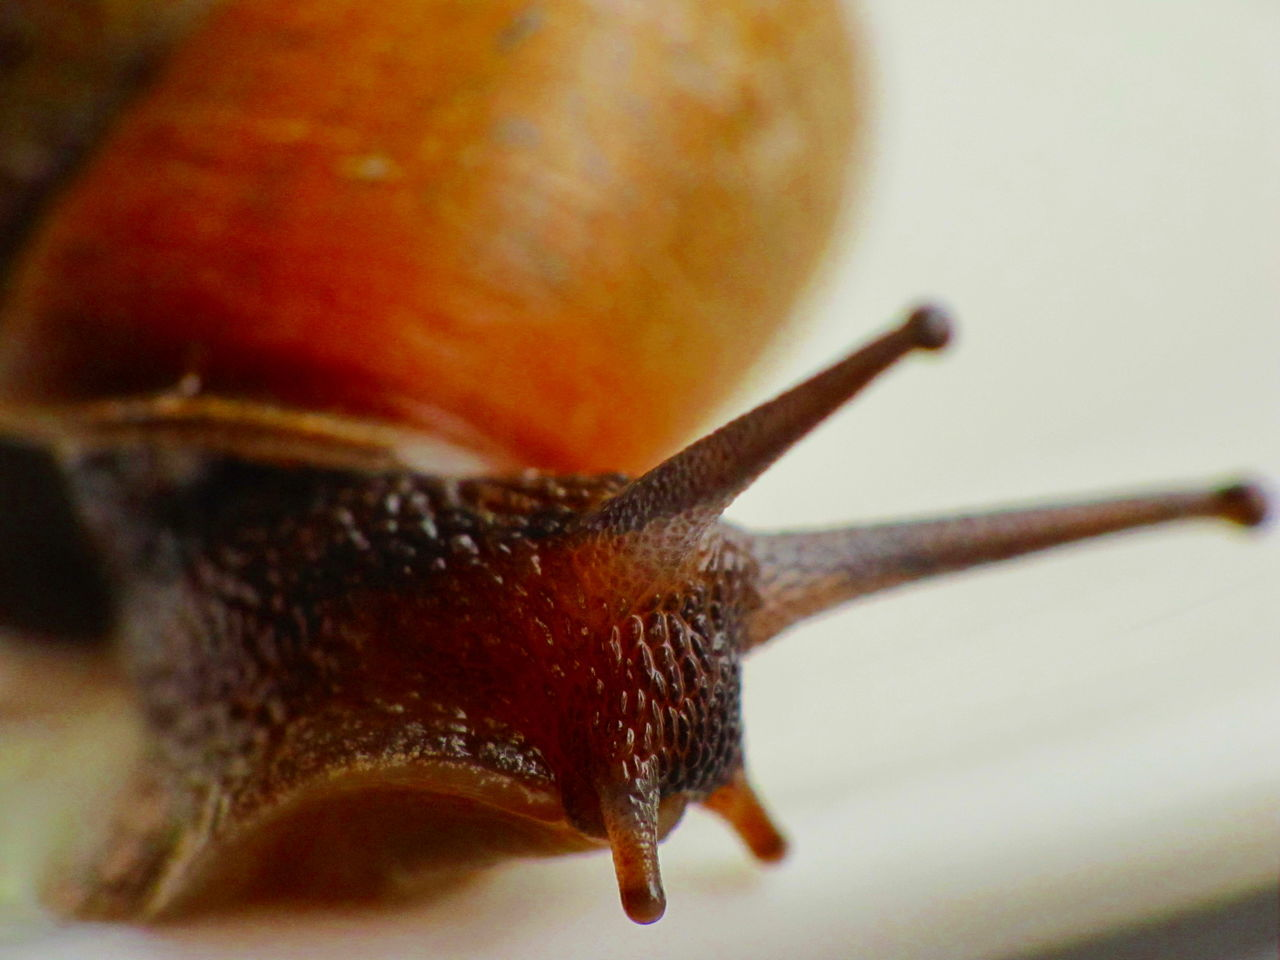 Animal Themes Close-up Day Escargot Fragility Freshness Gastropod Nature No People One Animal Outdoors Slimy